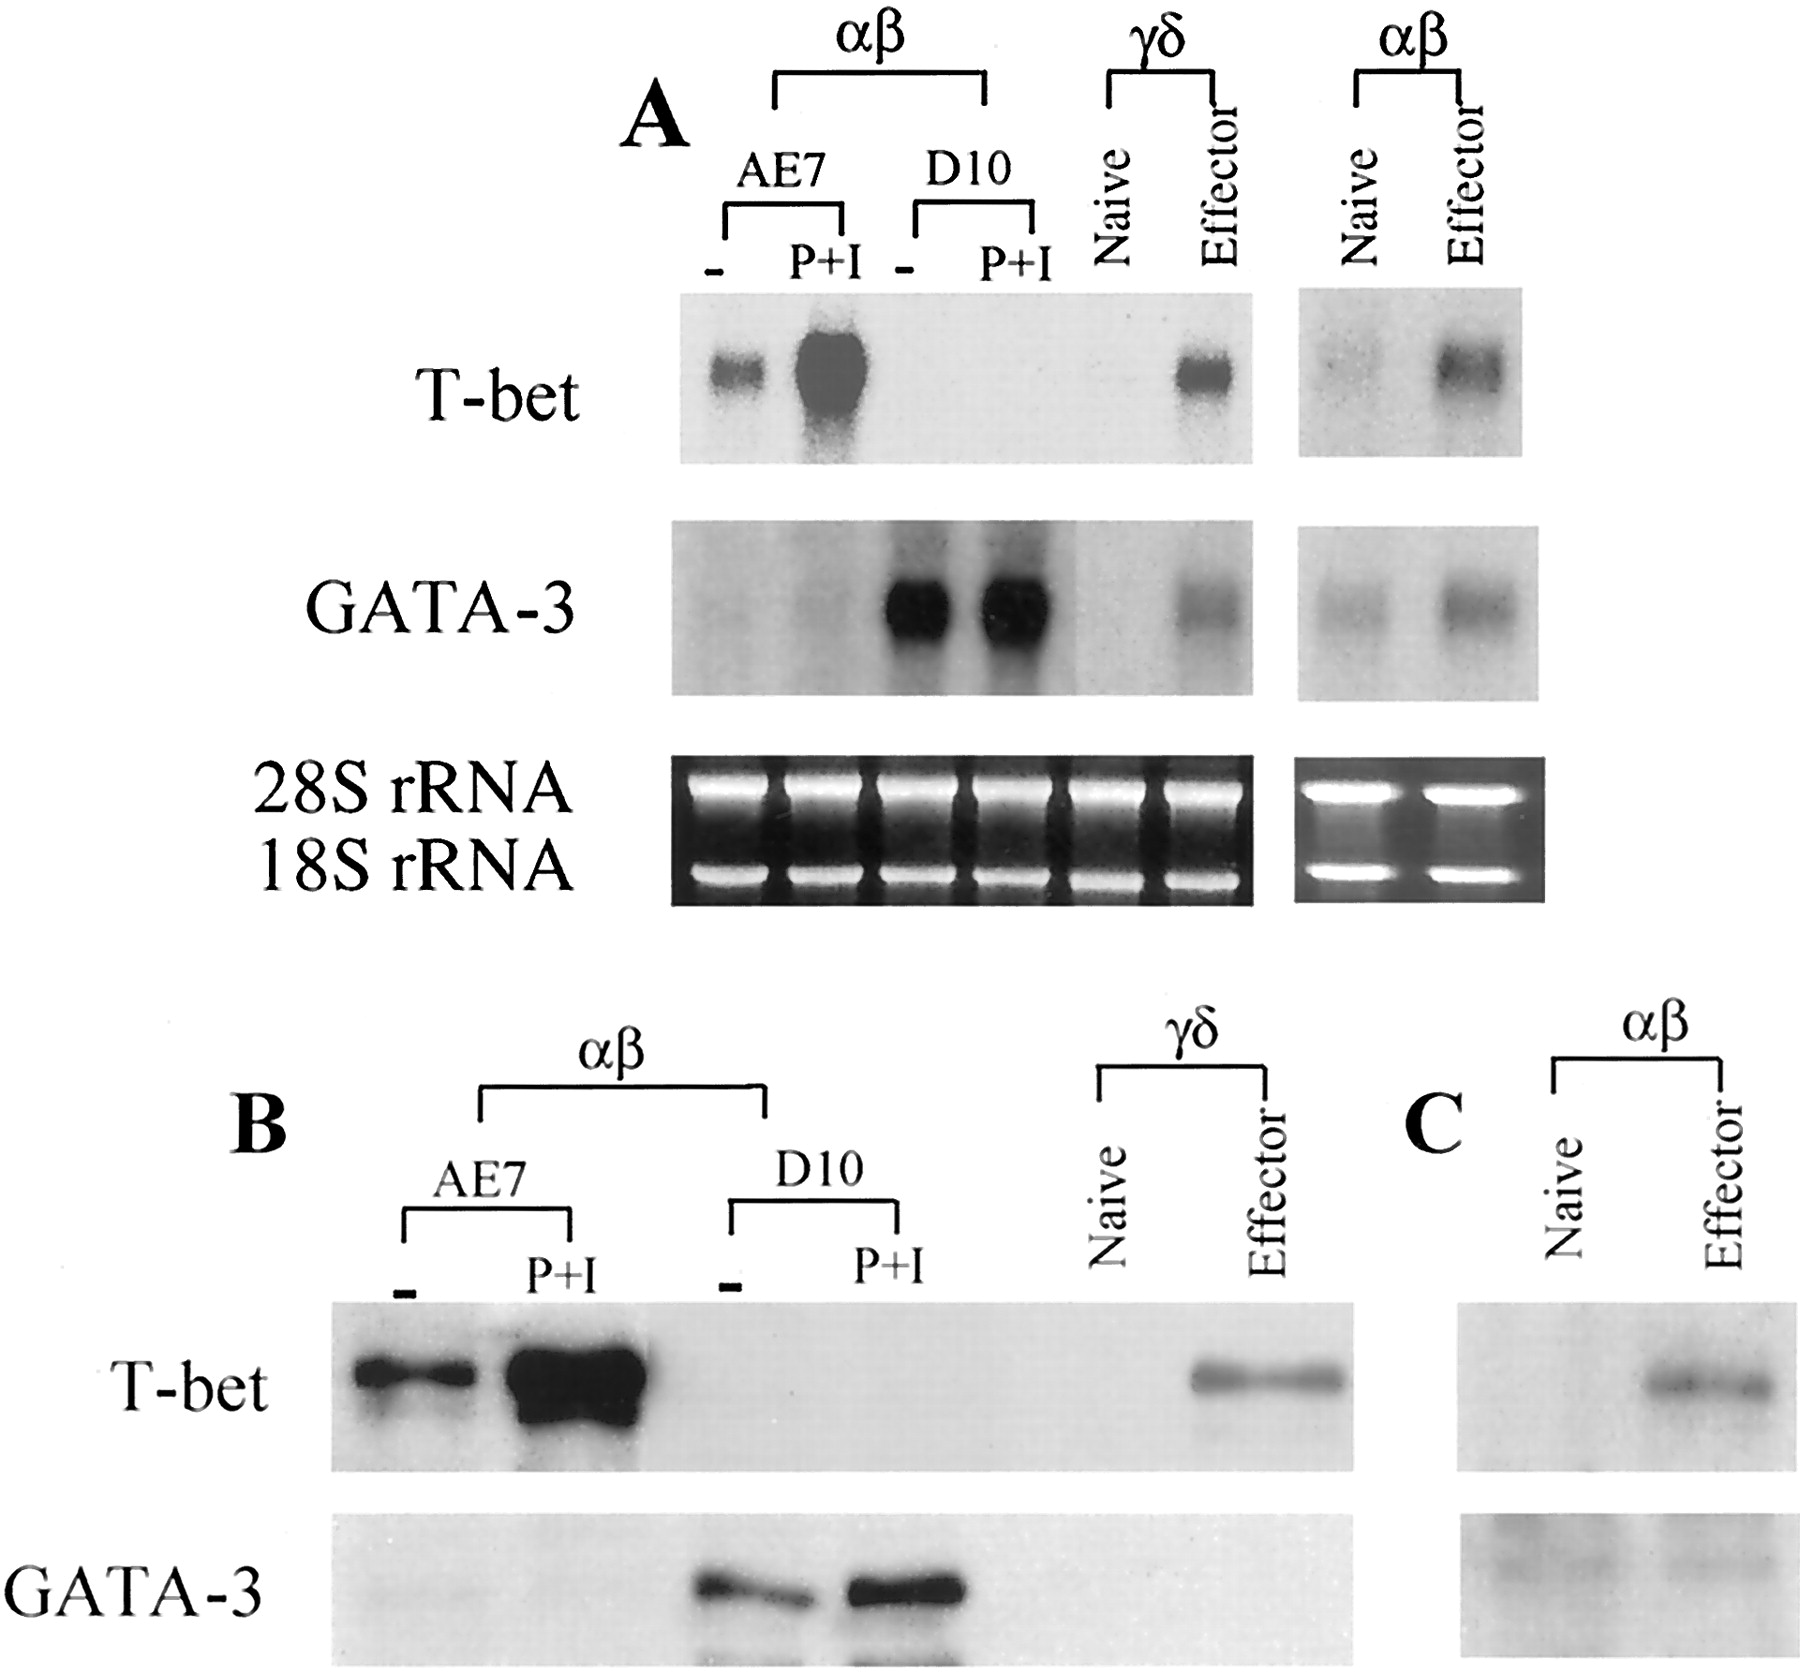 T-Bet Expression and Failure of GATA-3 Cross-Regulation Lead